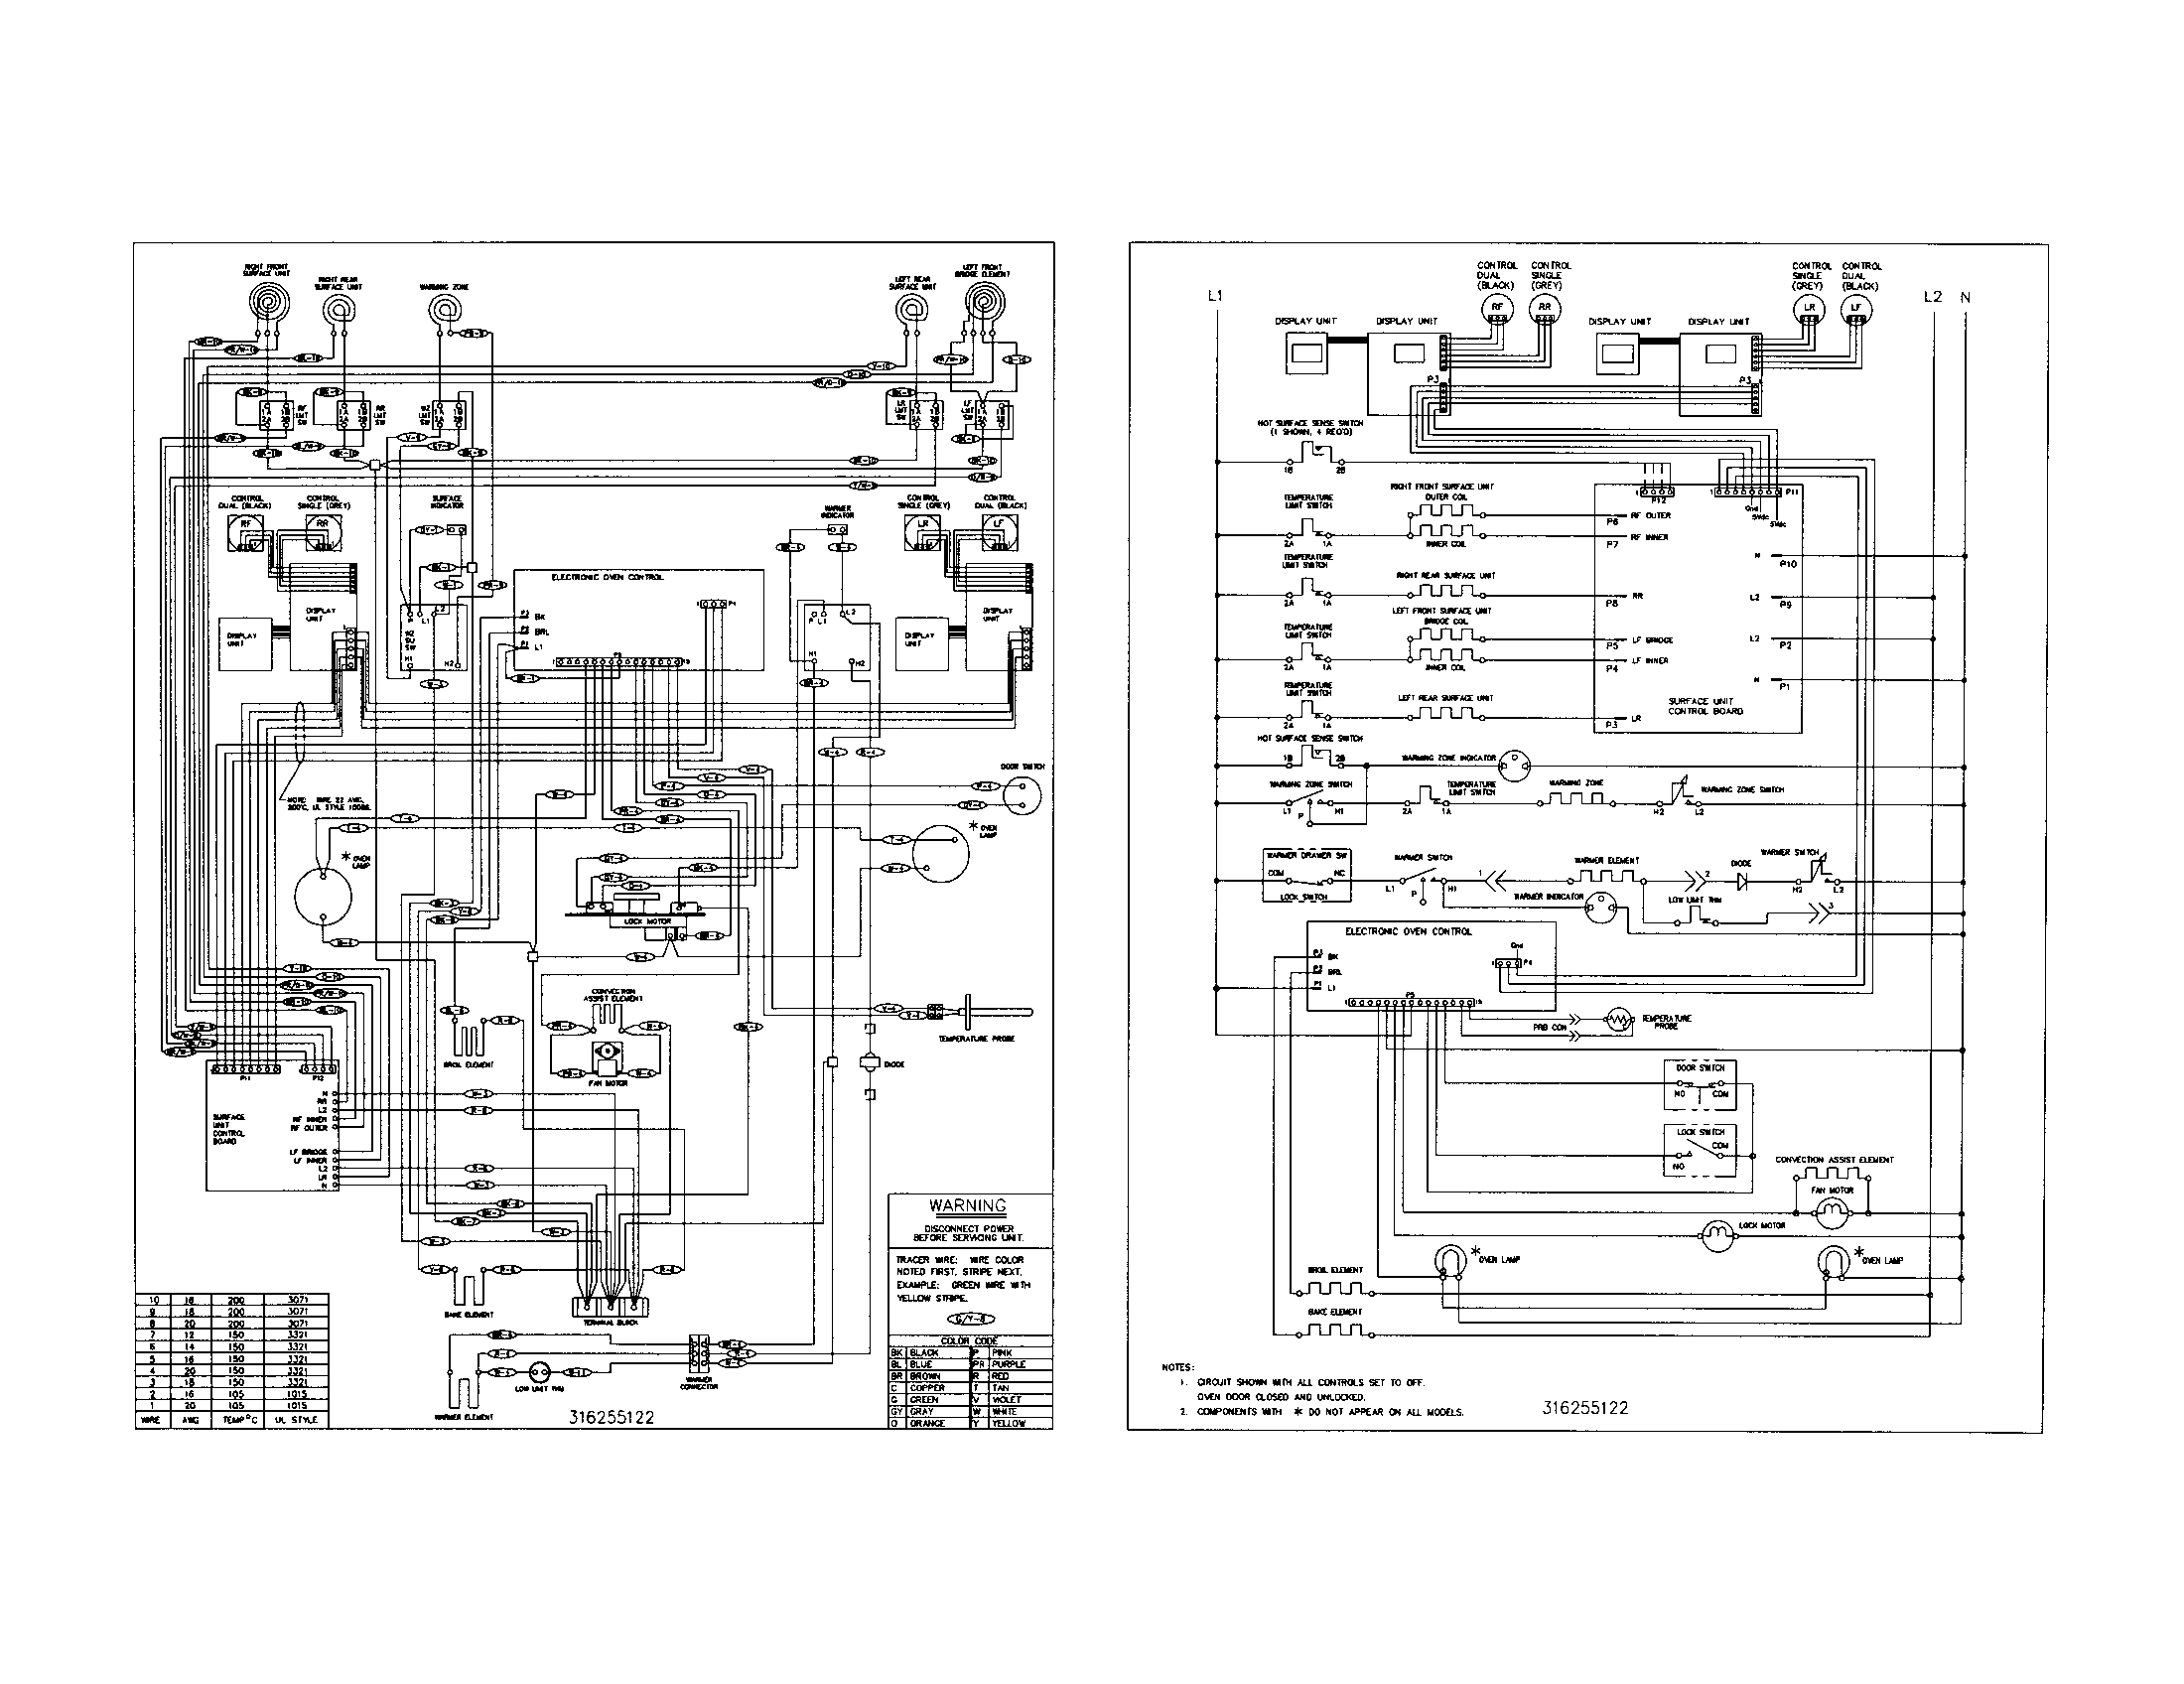 electric motor wiring diagram 220 to 110 sample